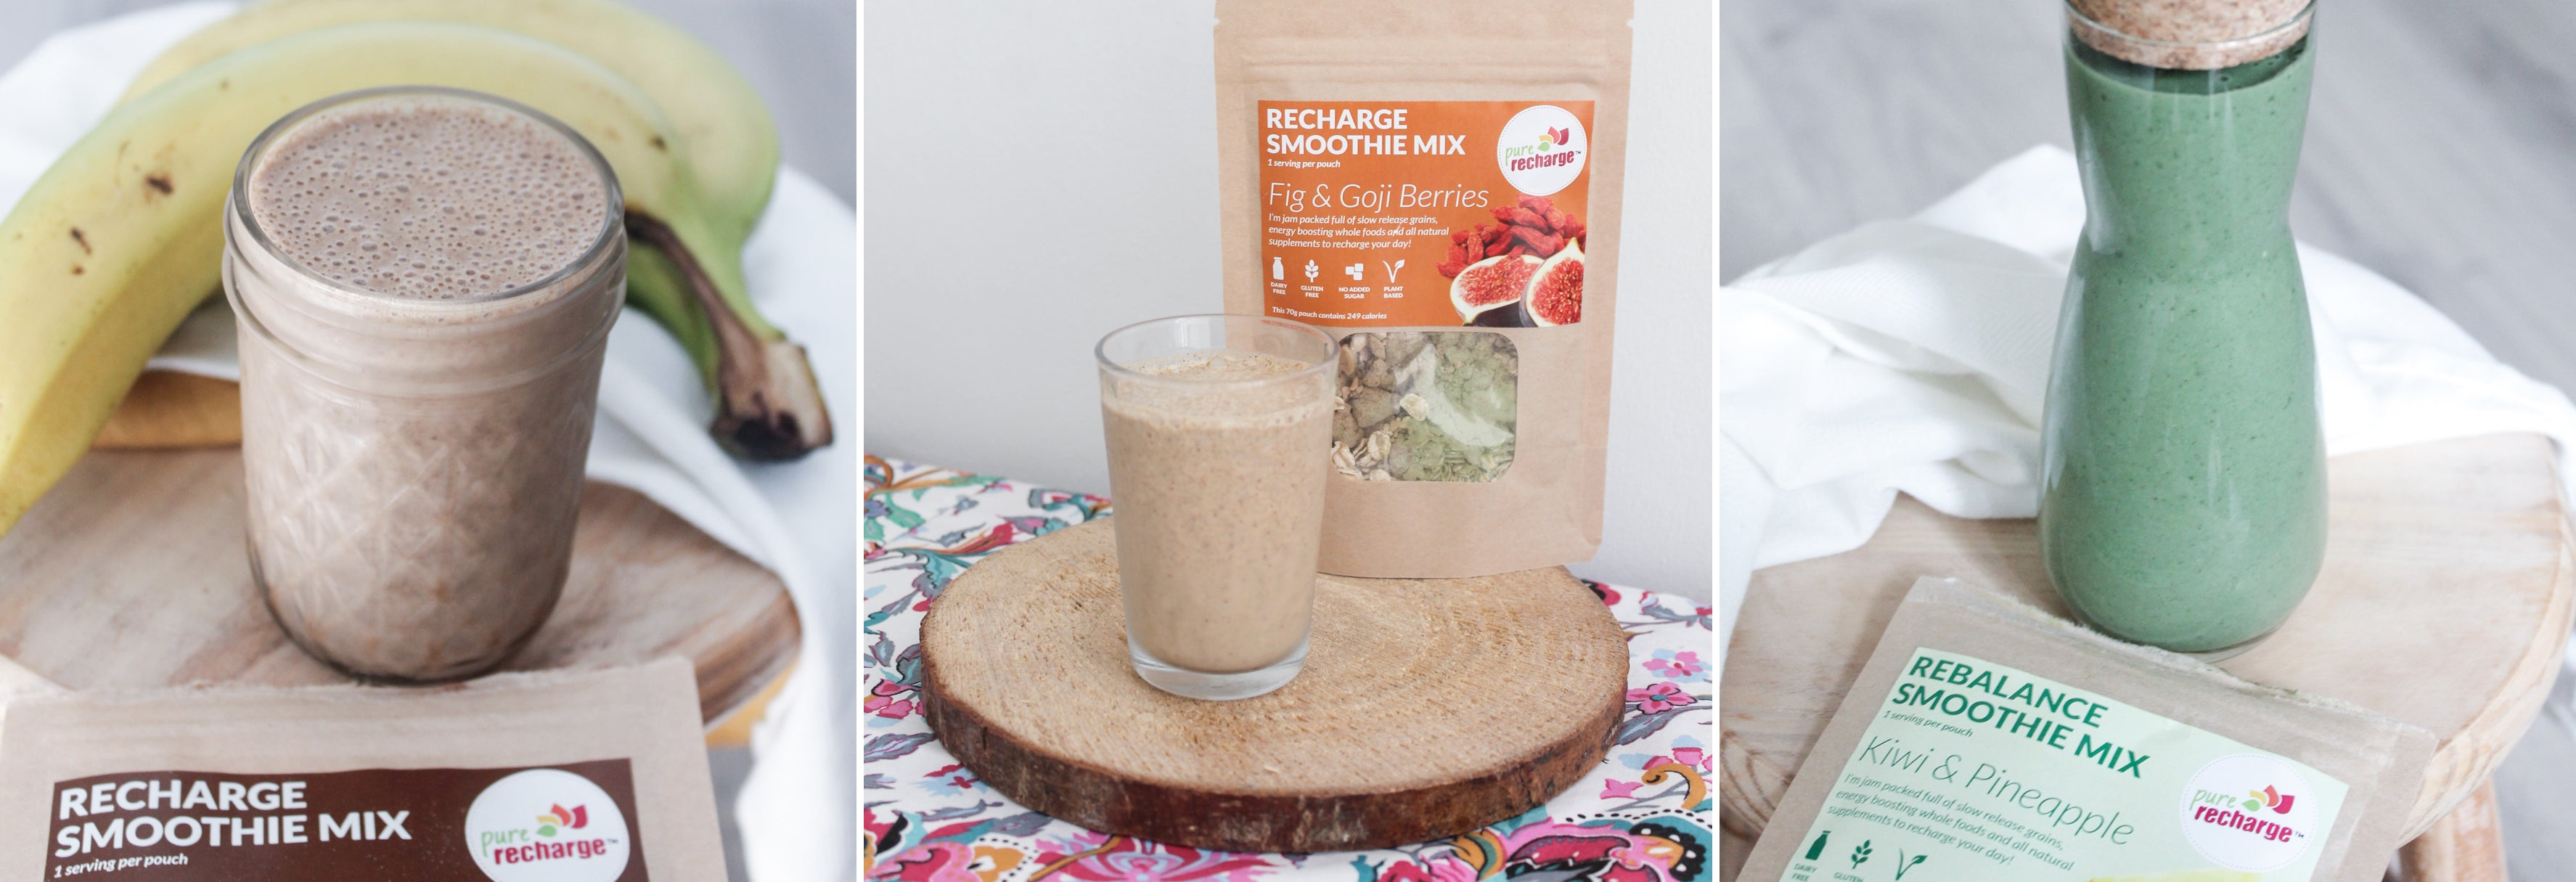 Pure Recharge Smoothie mixes